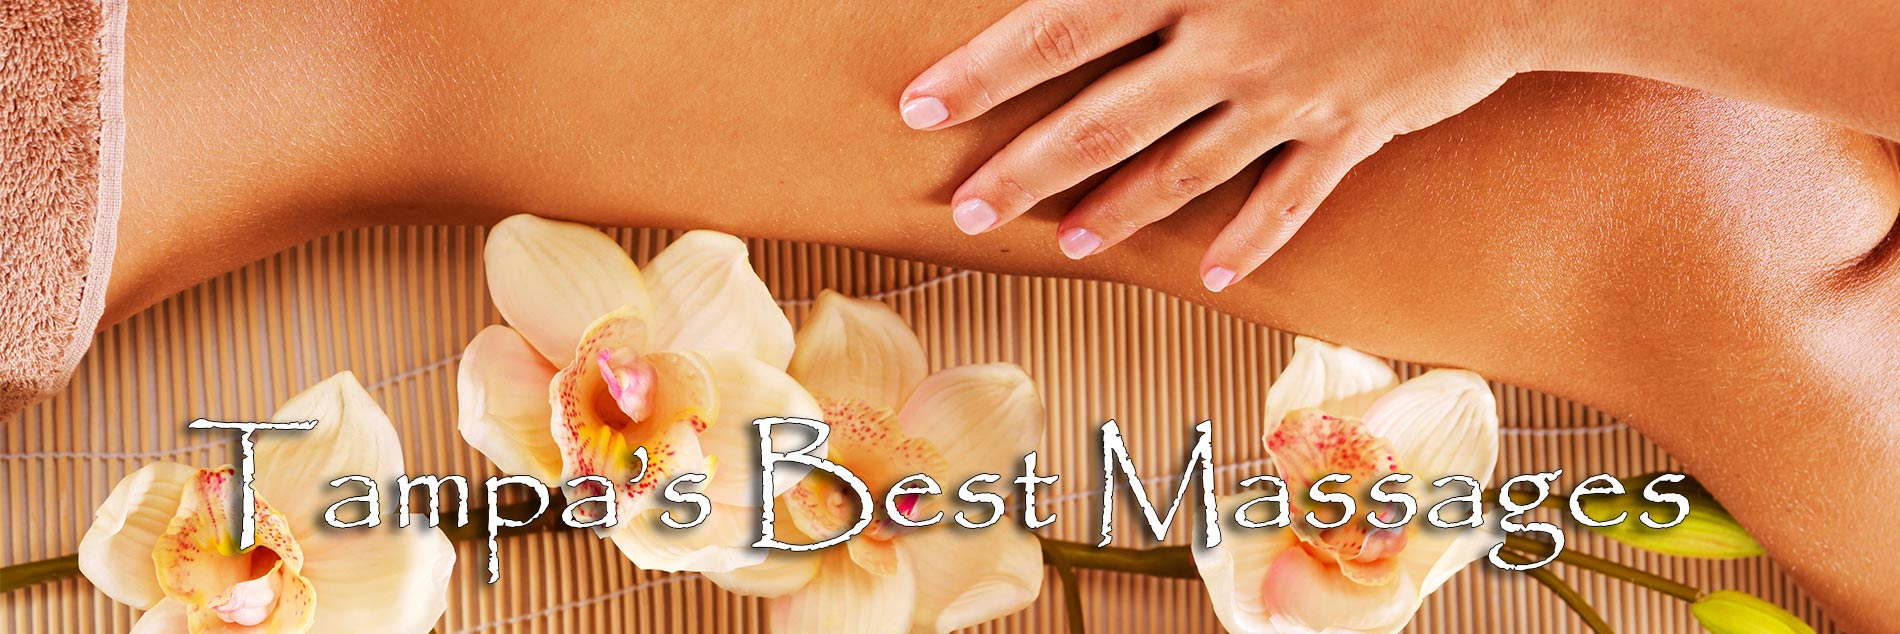 Tampa's Best Massages